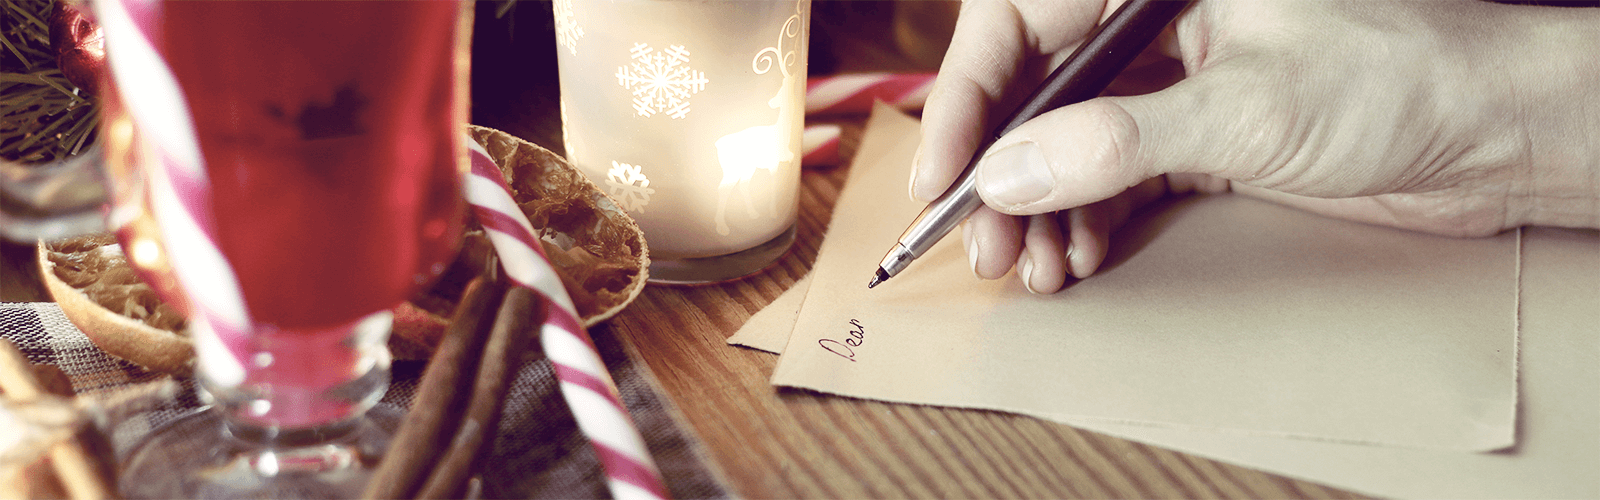 Someone writing a letter beside holiday decorations, including a candy cane and a candle.